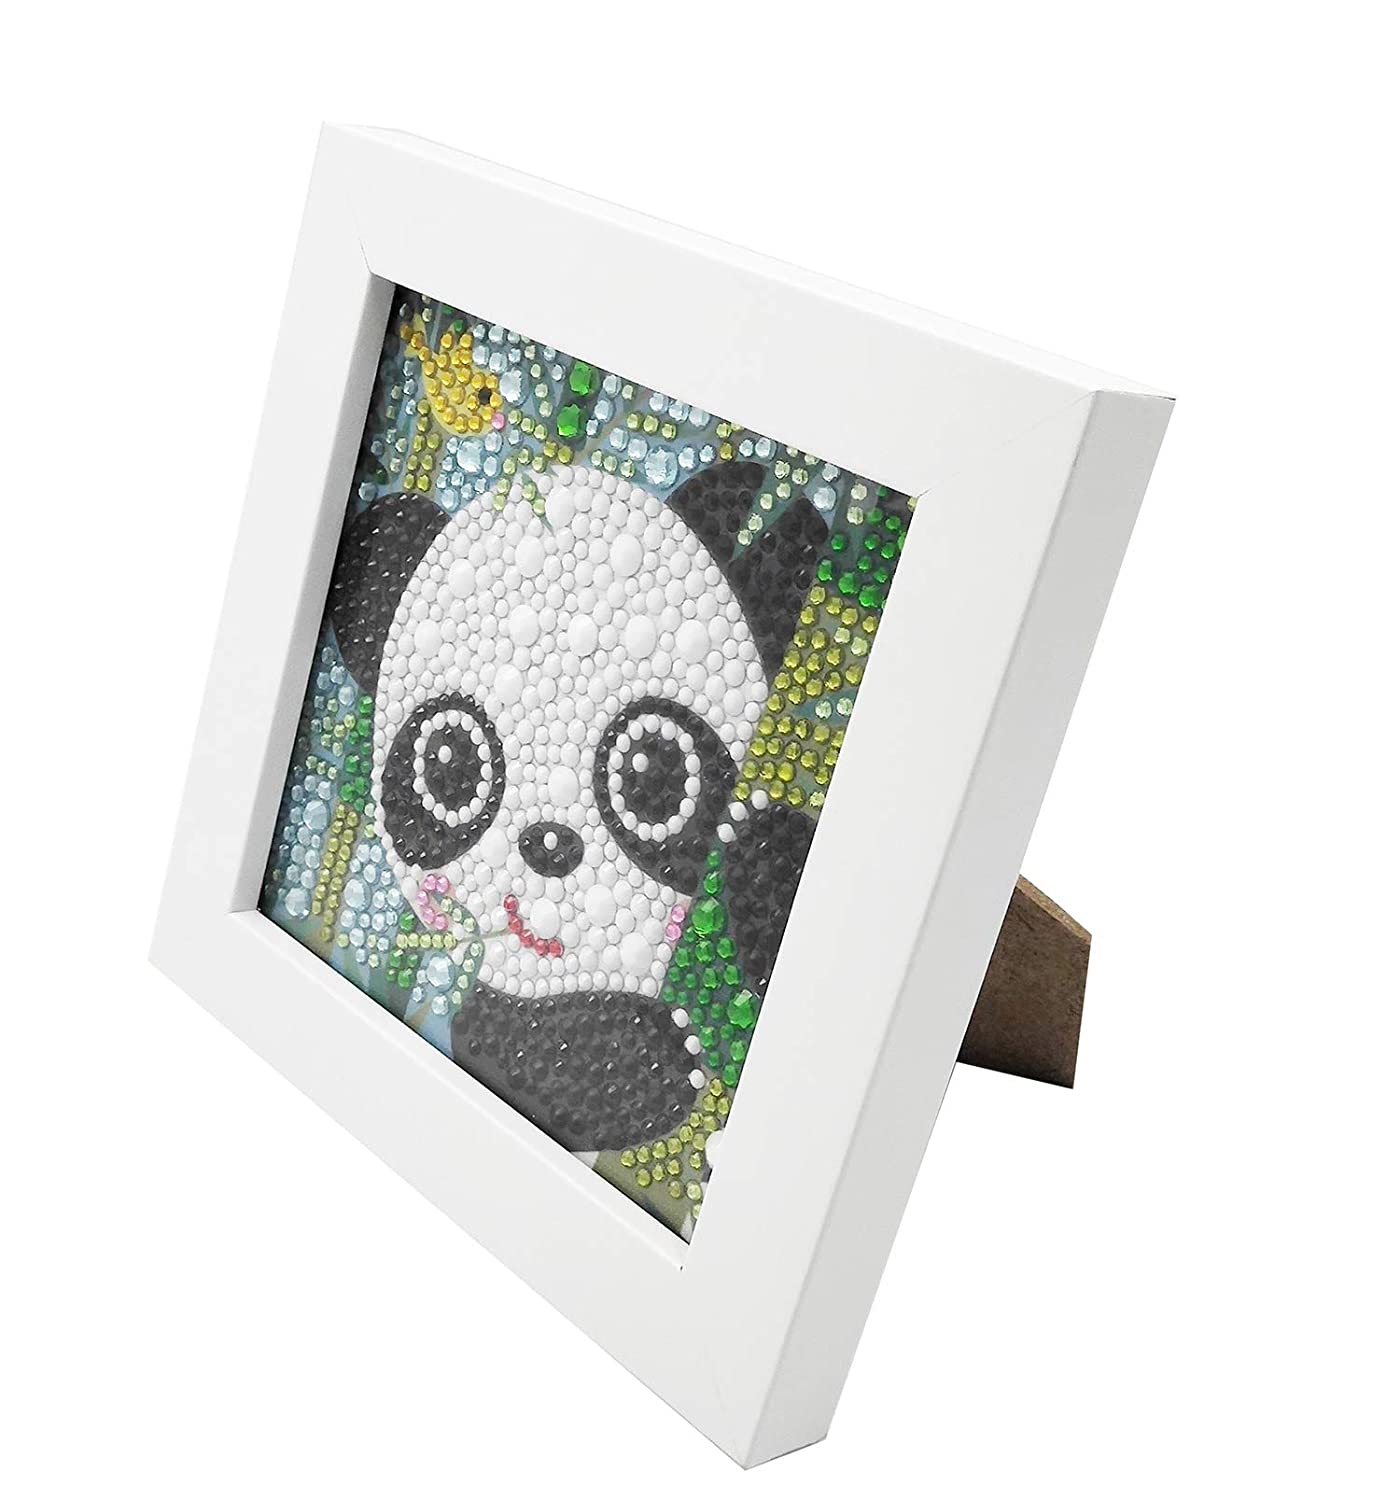 ParNarZar Small and Easy DIY 5d Diamond Painting Kits Mosaic Making with White Frame for Kids Little Turtle 6X6inches